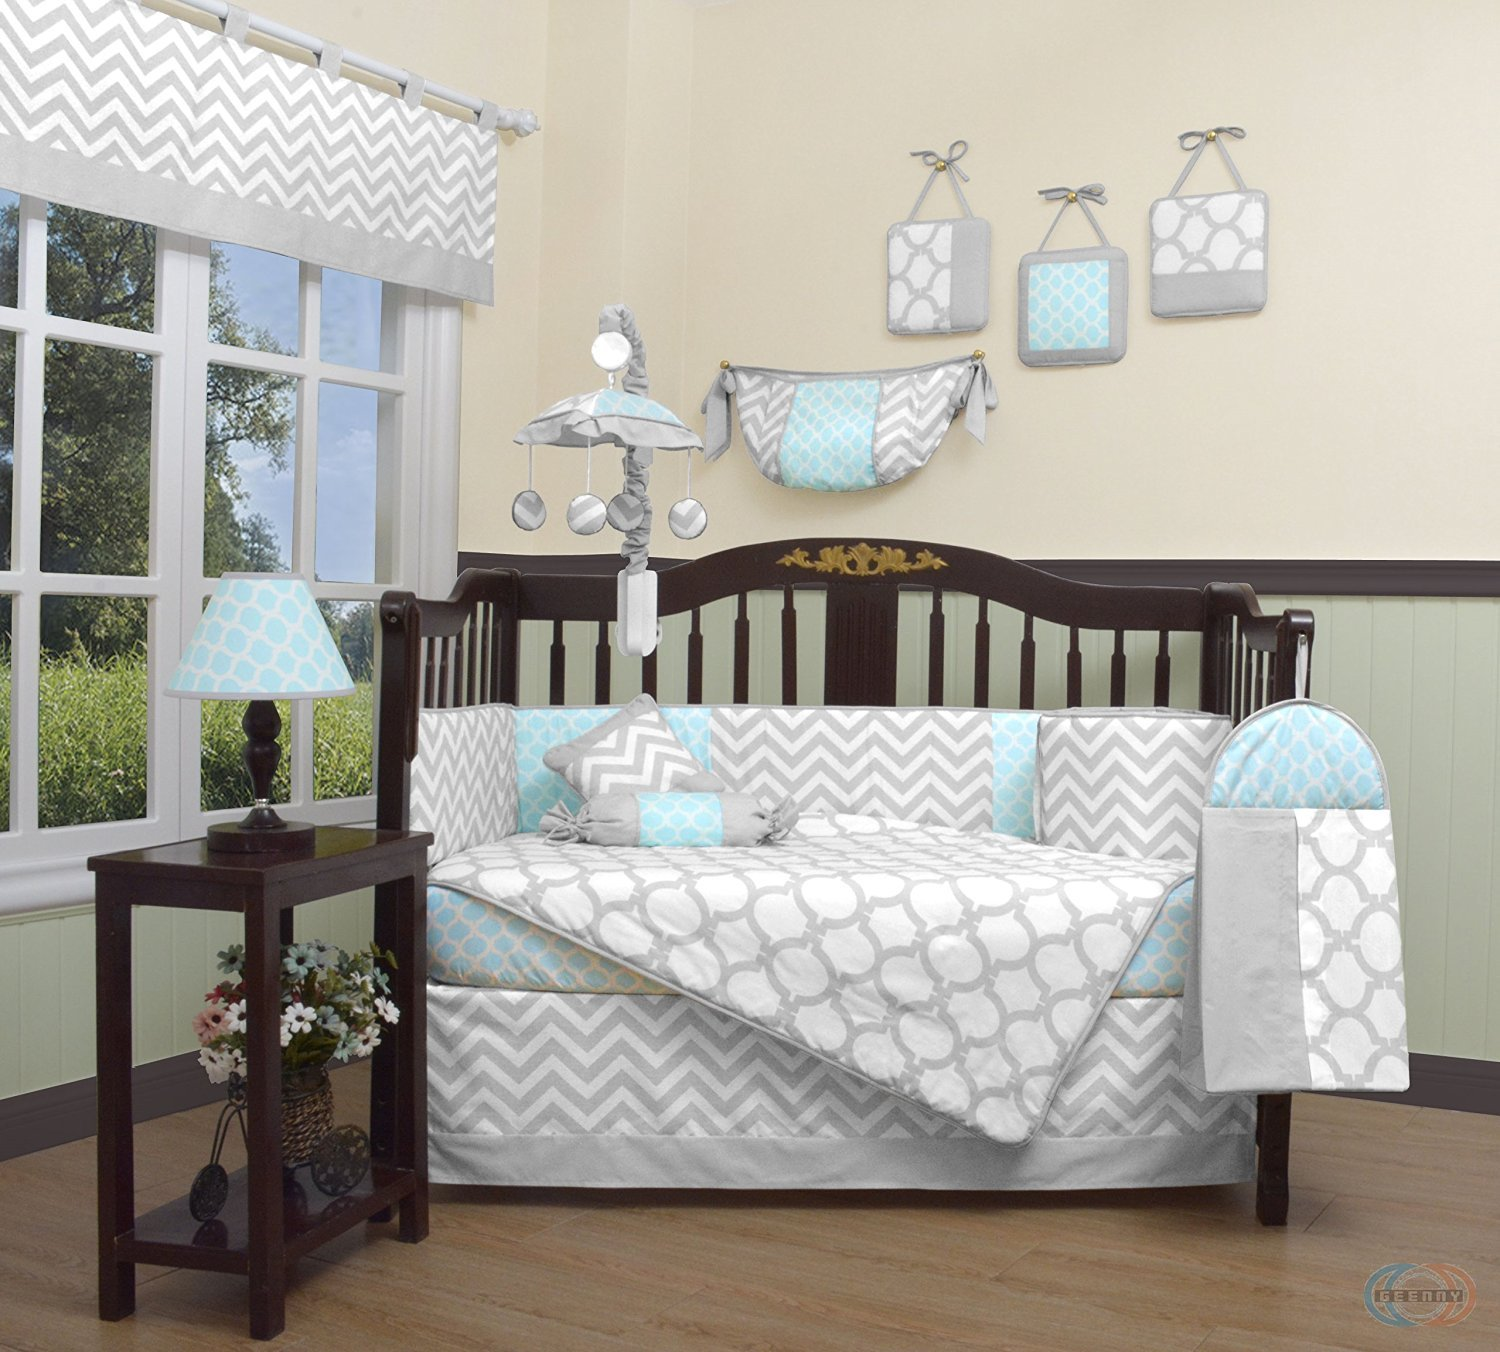 anadolukardiyolderg grey bed yellow cot green girl tag good gray articles baby princess sets nursery blue and bumper crib light deer set cribs bedding sheets mint with pretty looking